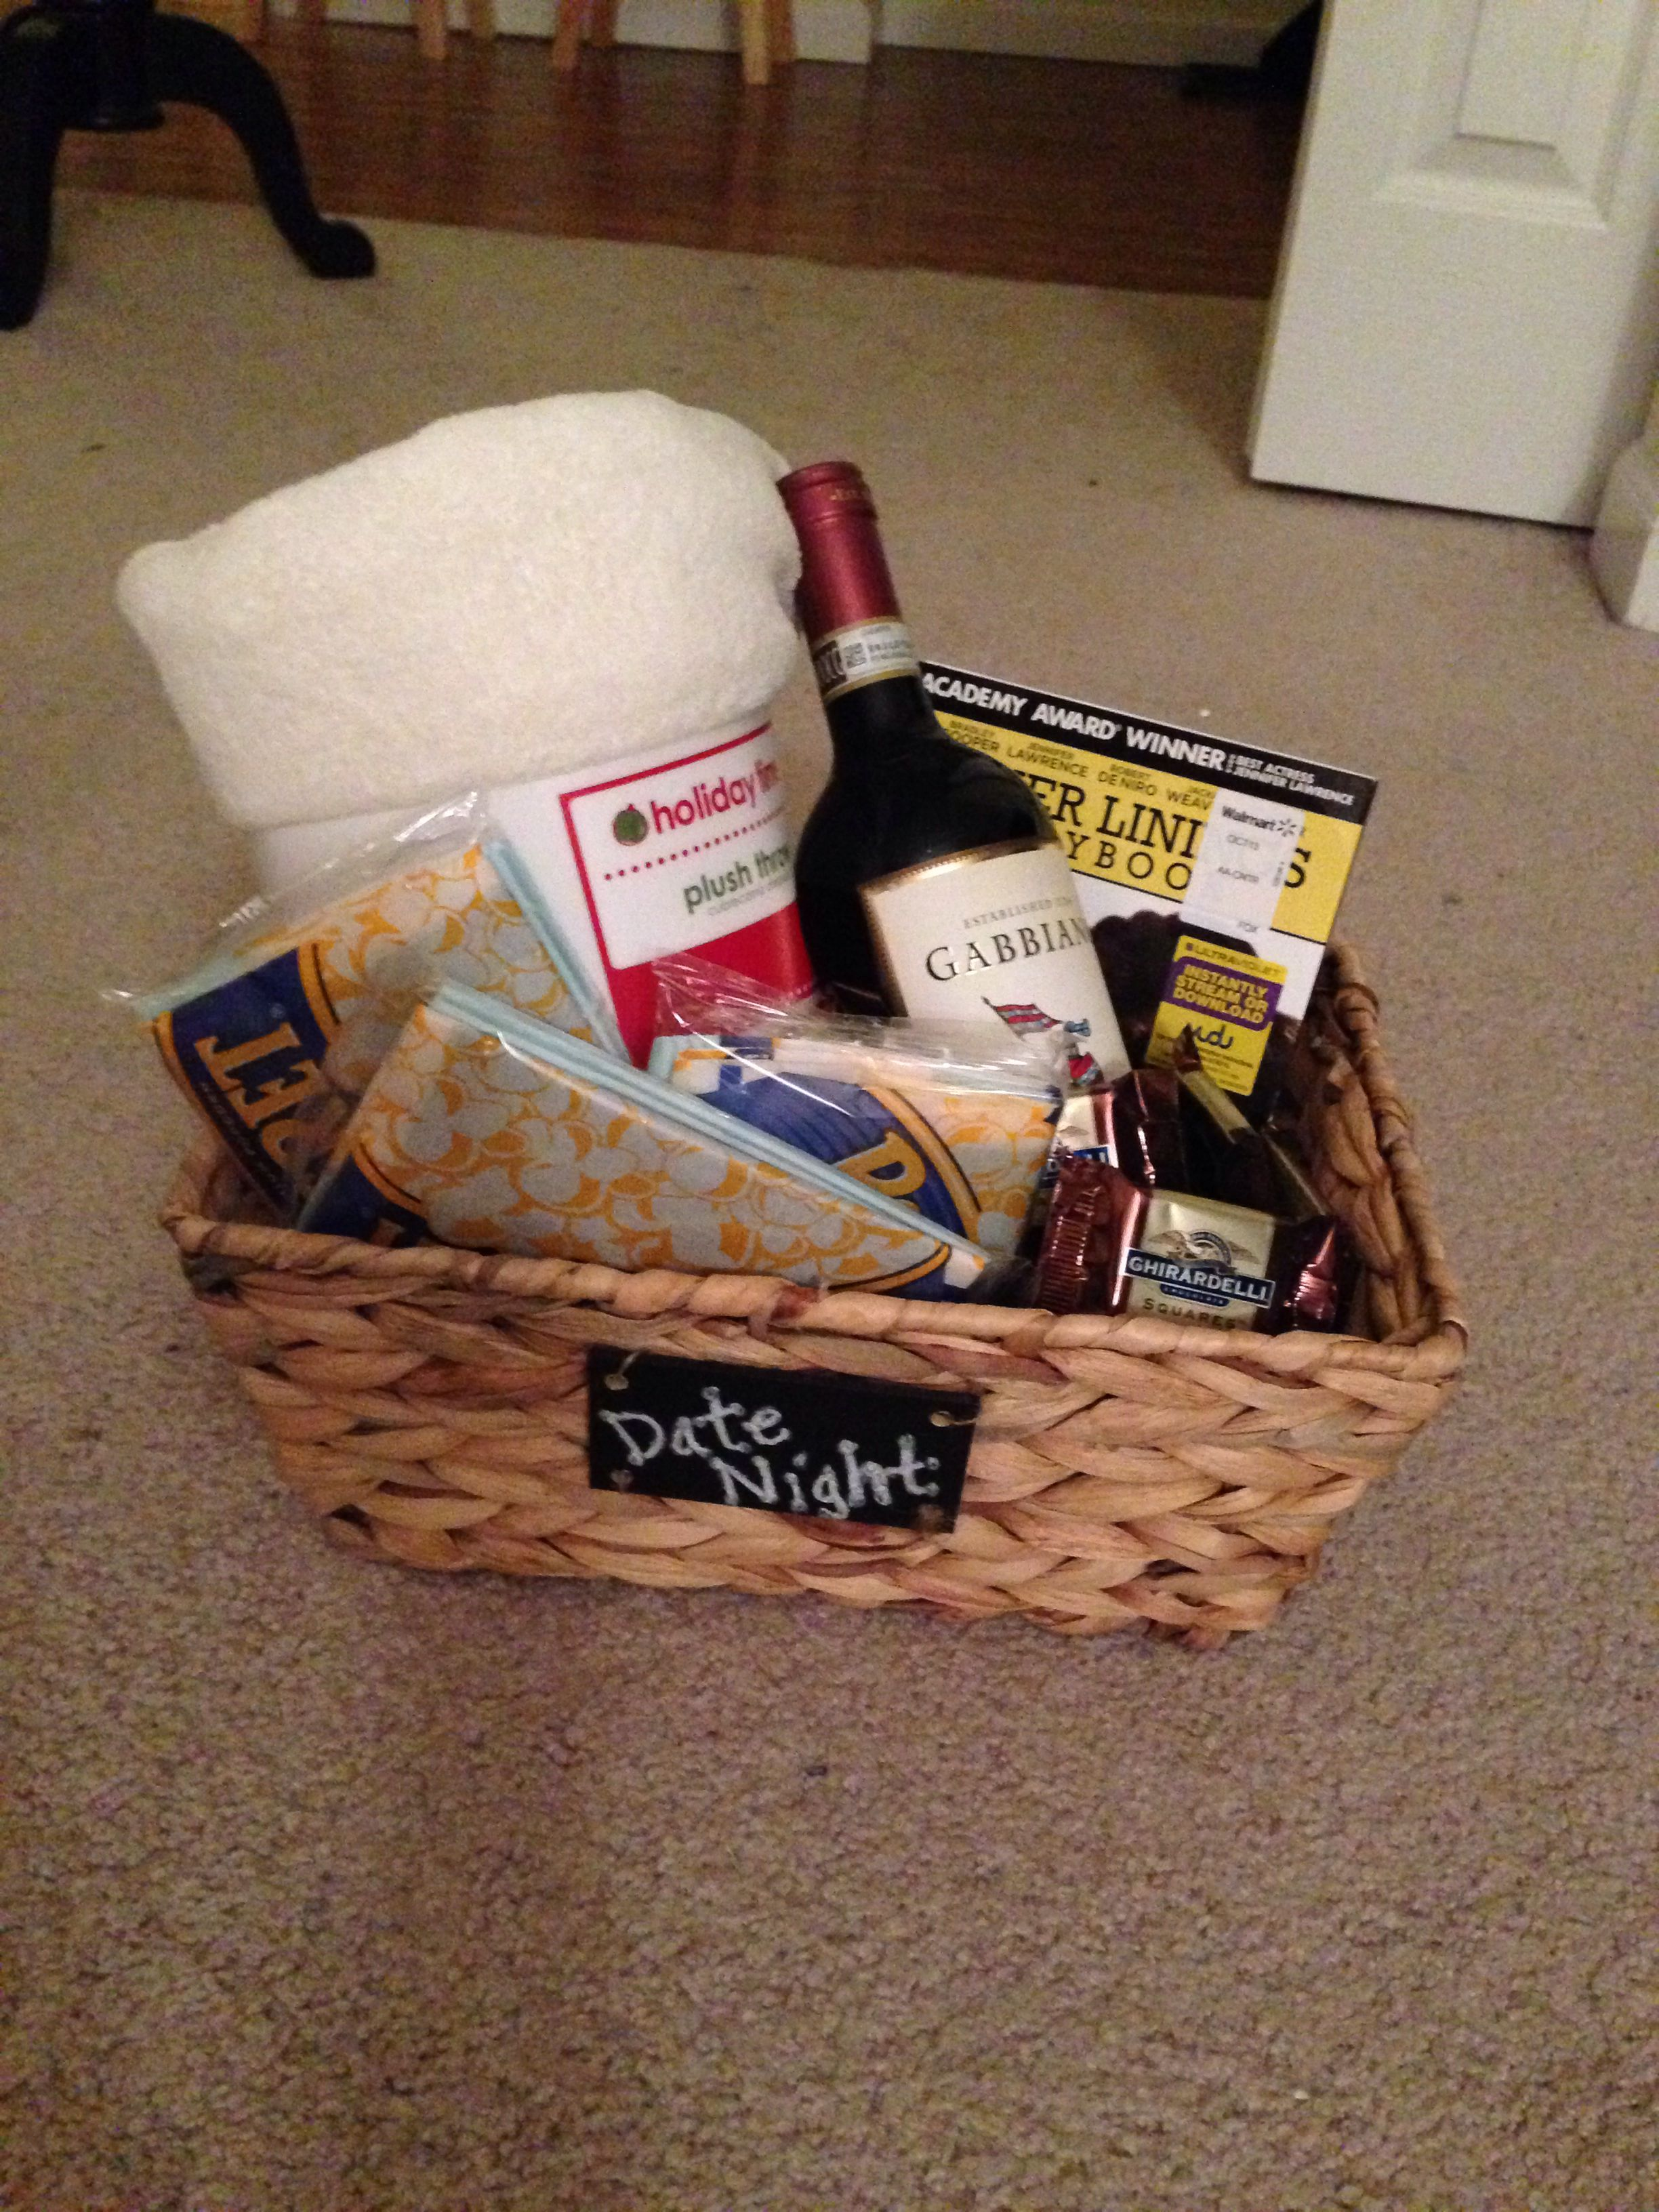 dating basket Gifts and gift ideas for girlfriend new natural cucumber & olive oil spa basket 1 review $5999 personalized barley pub glasses 45 reviews $5900.